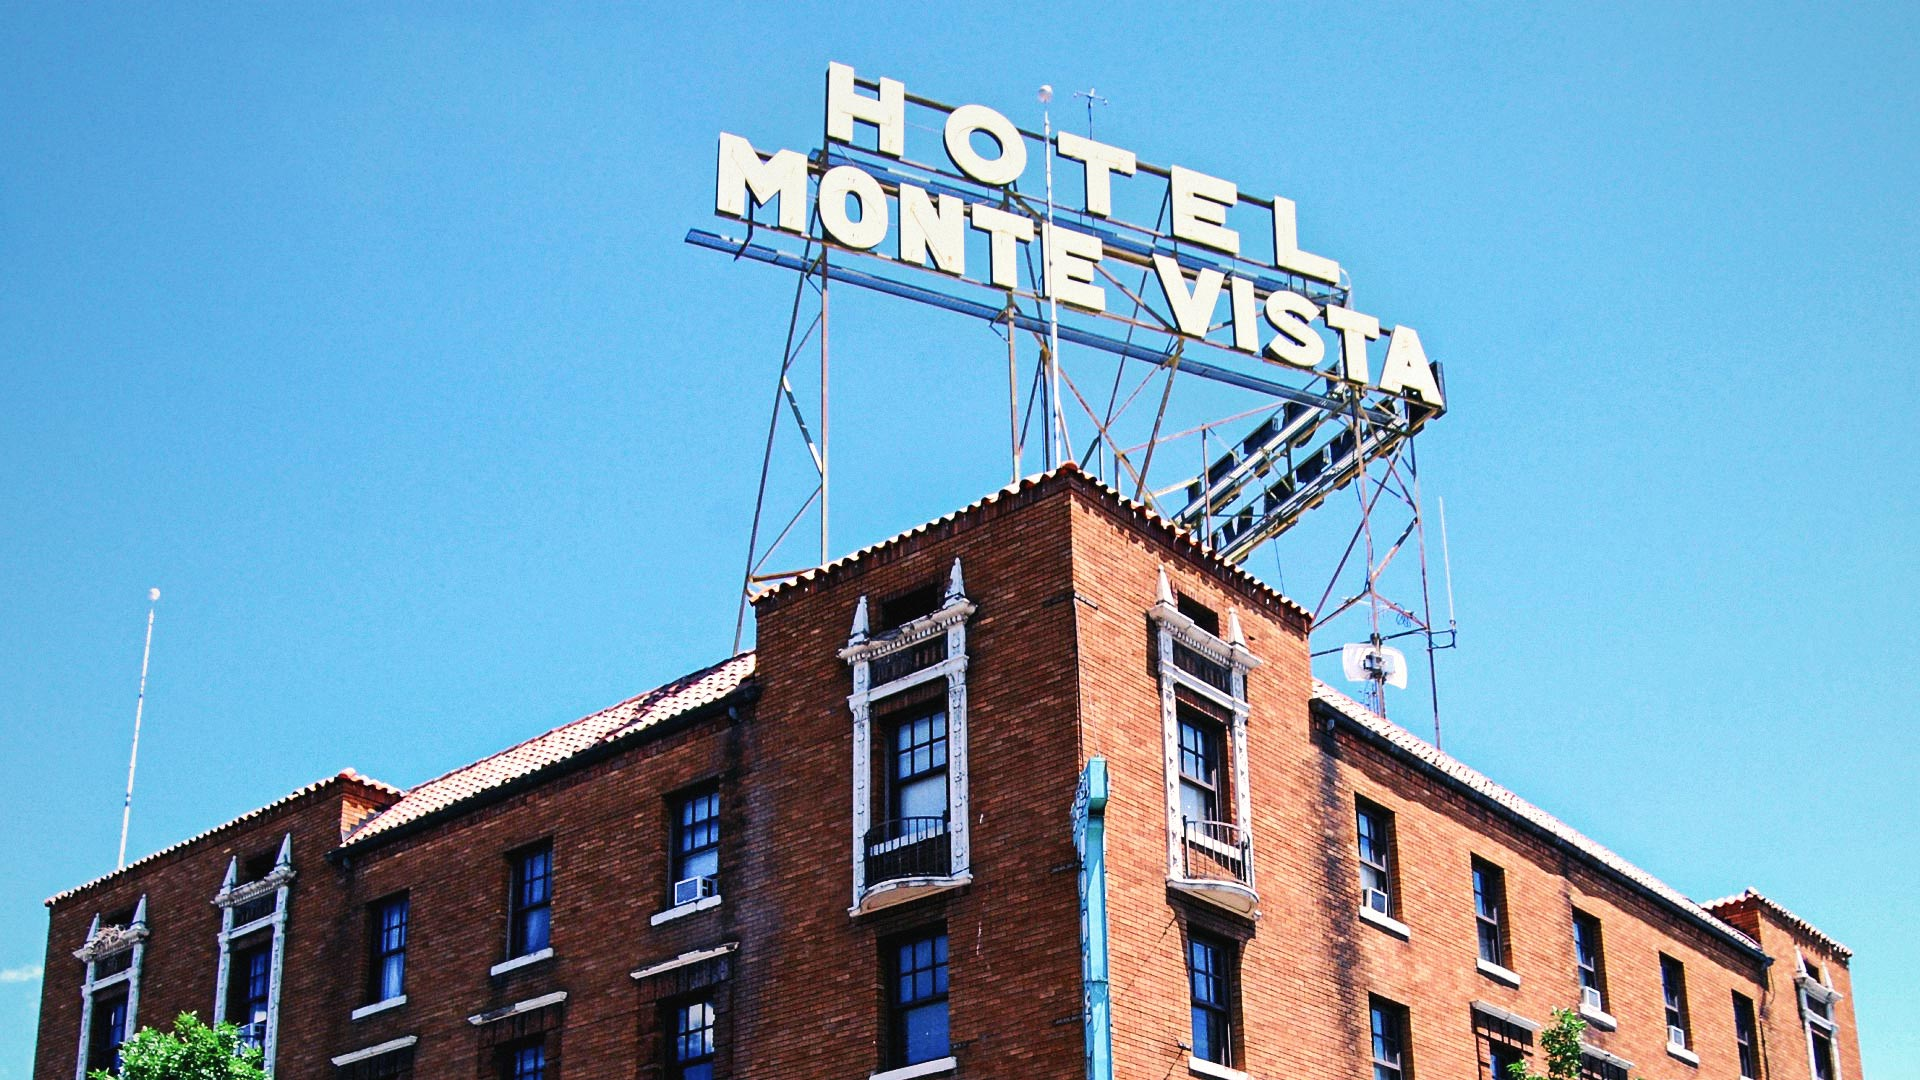 The Hotel Monte Vista in downtown Flagstaff, Arizona.